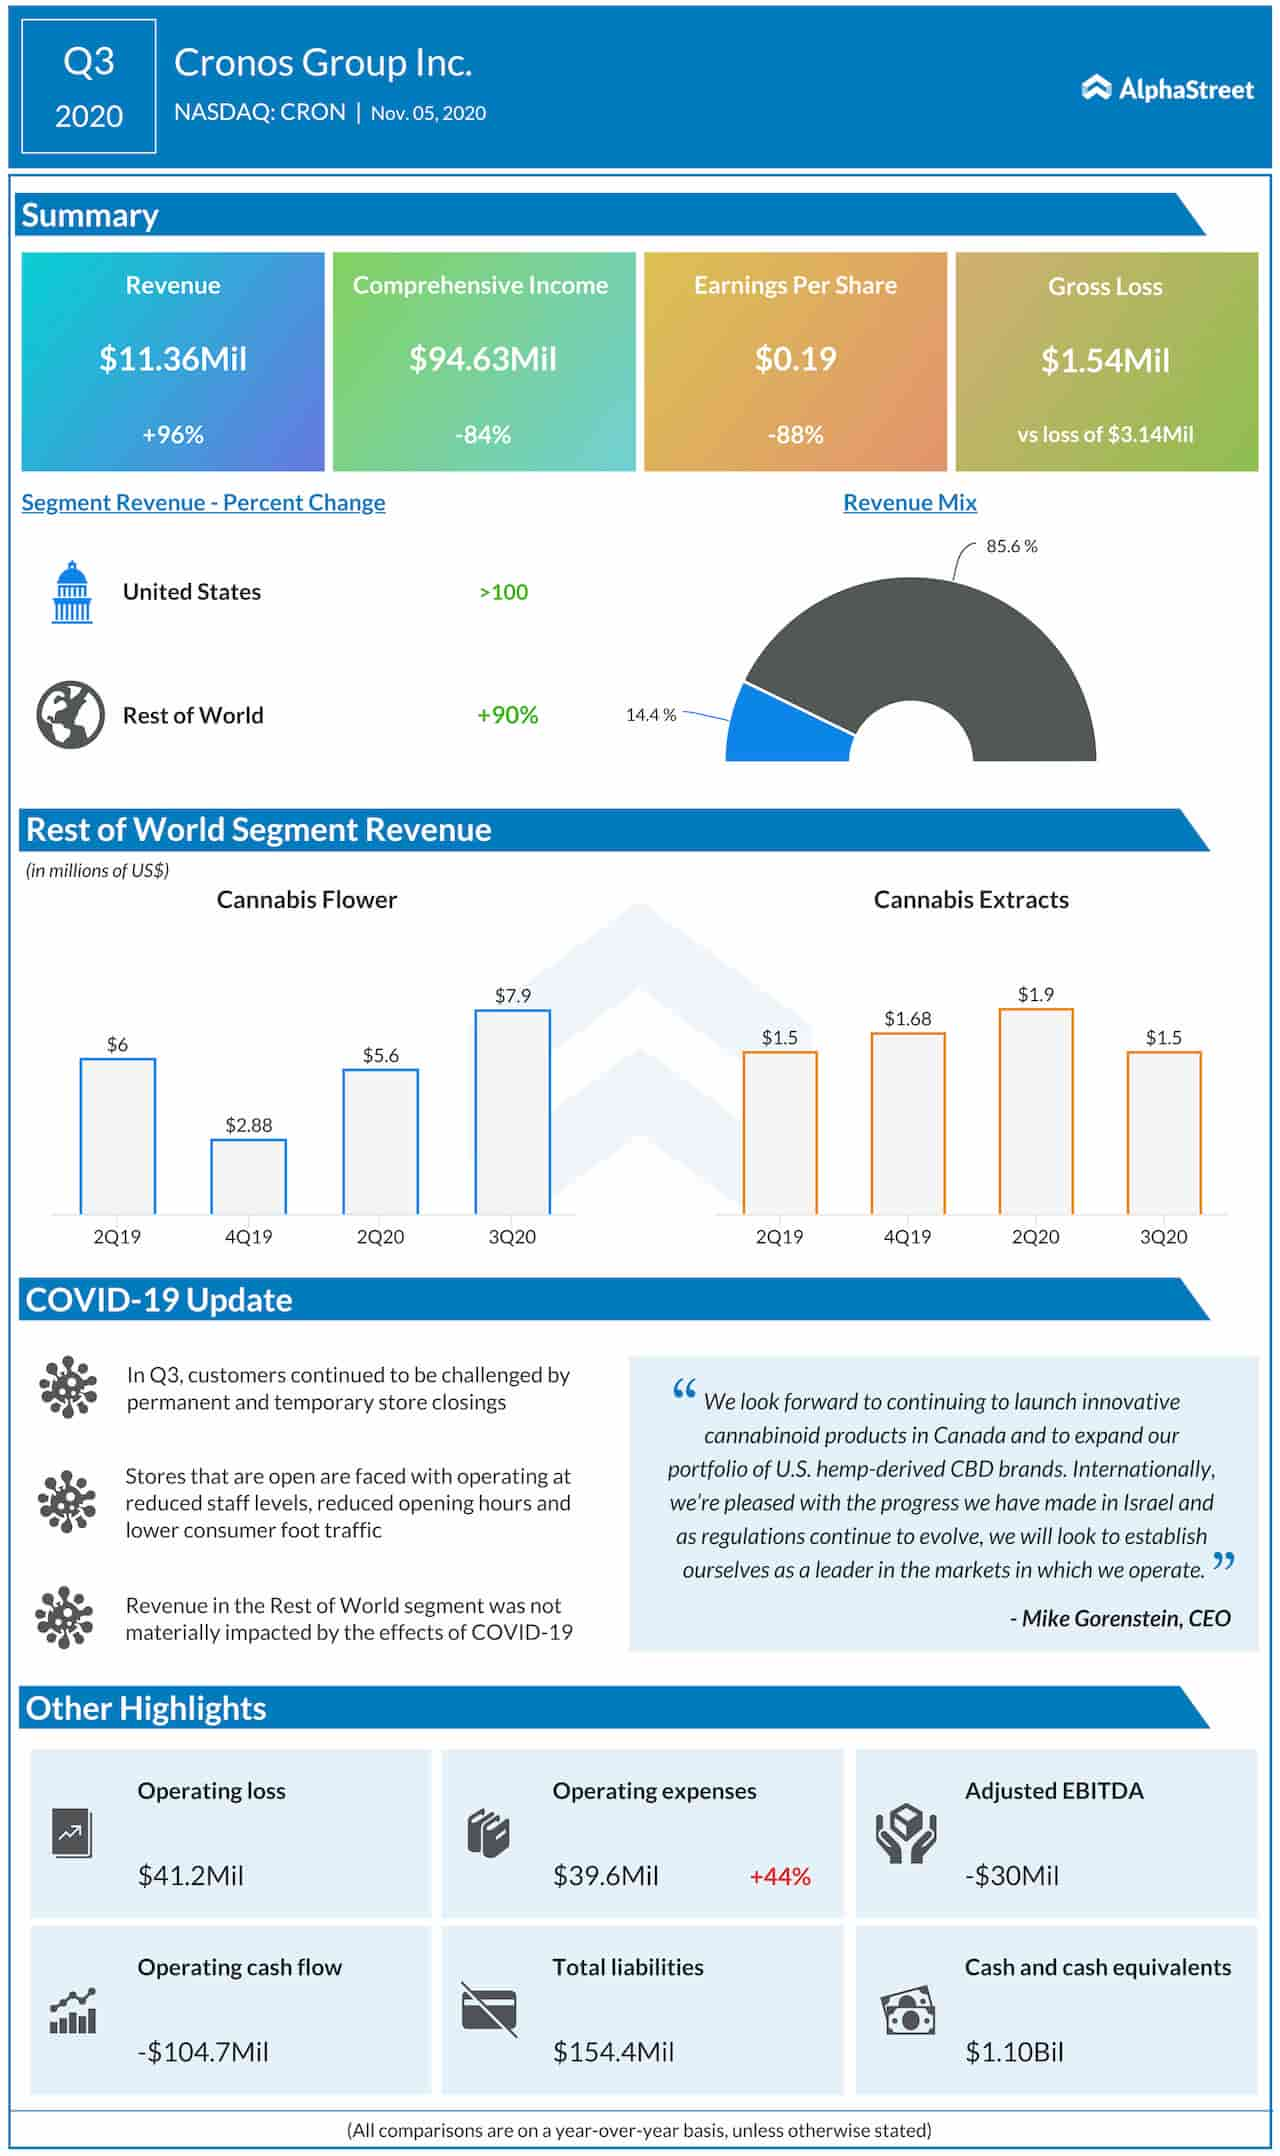 Cronos Group Q3 2020 earnings infographic